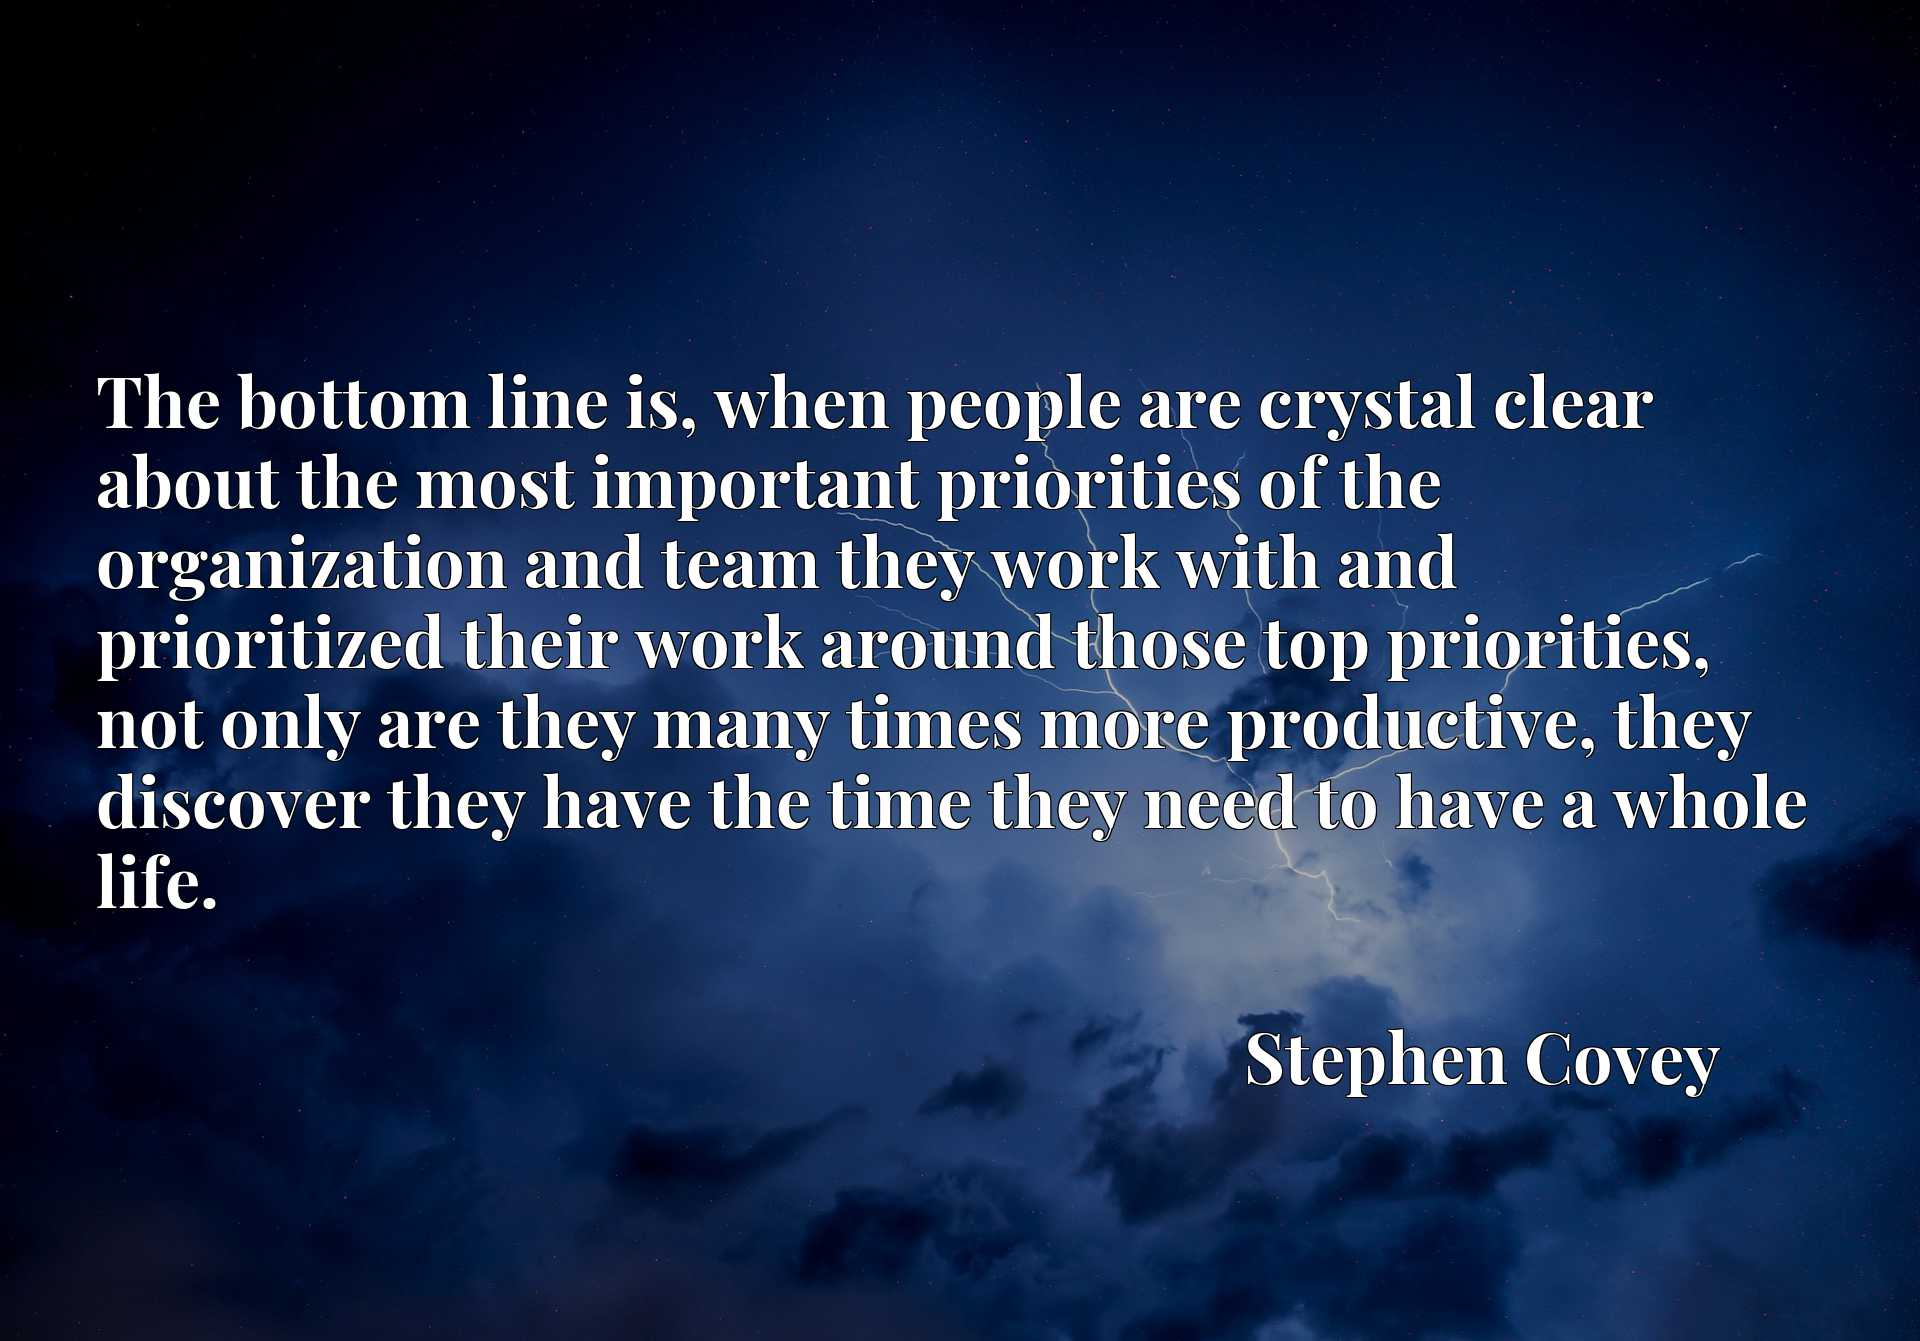 The bottom line is, when people are crystal clear about the most important priorities of the organization and team they work with and prioritized their work around those top priorities, not only are they many times more productive, they discover they have the time they need to have a whole life.